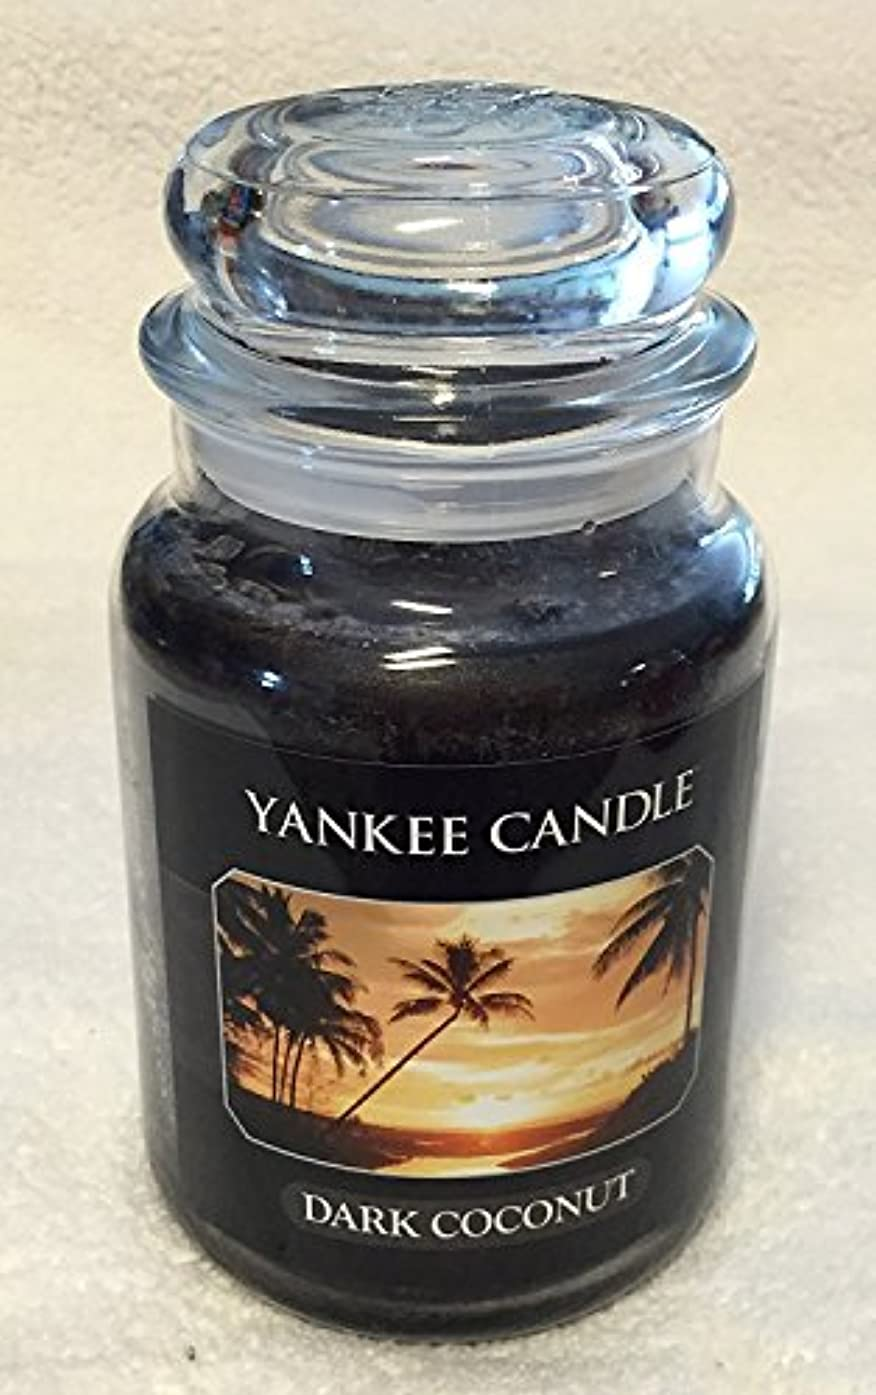 監査構造干渉ダークCoconut Yankee Candle Large Jar 22oz Candle